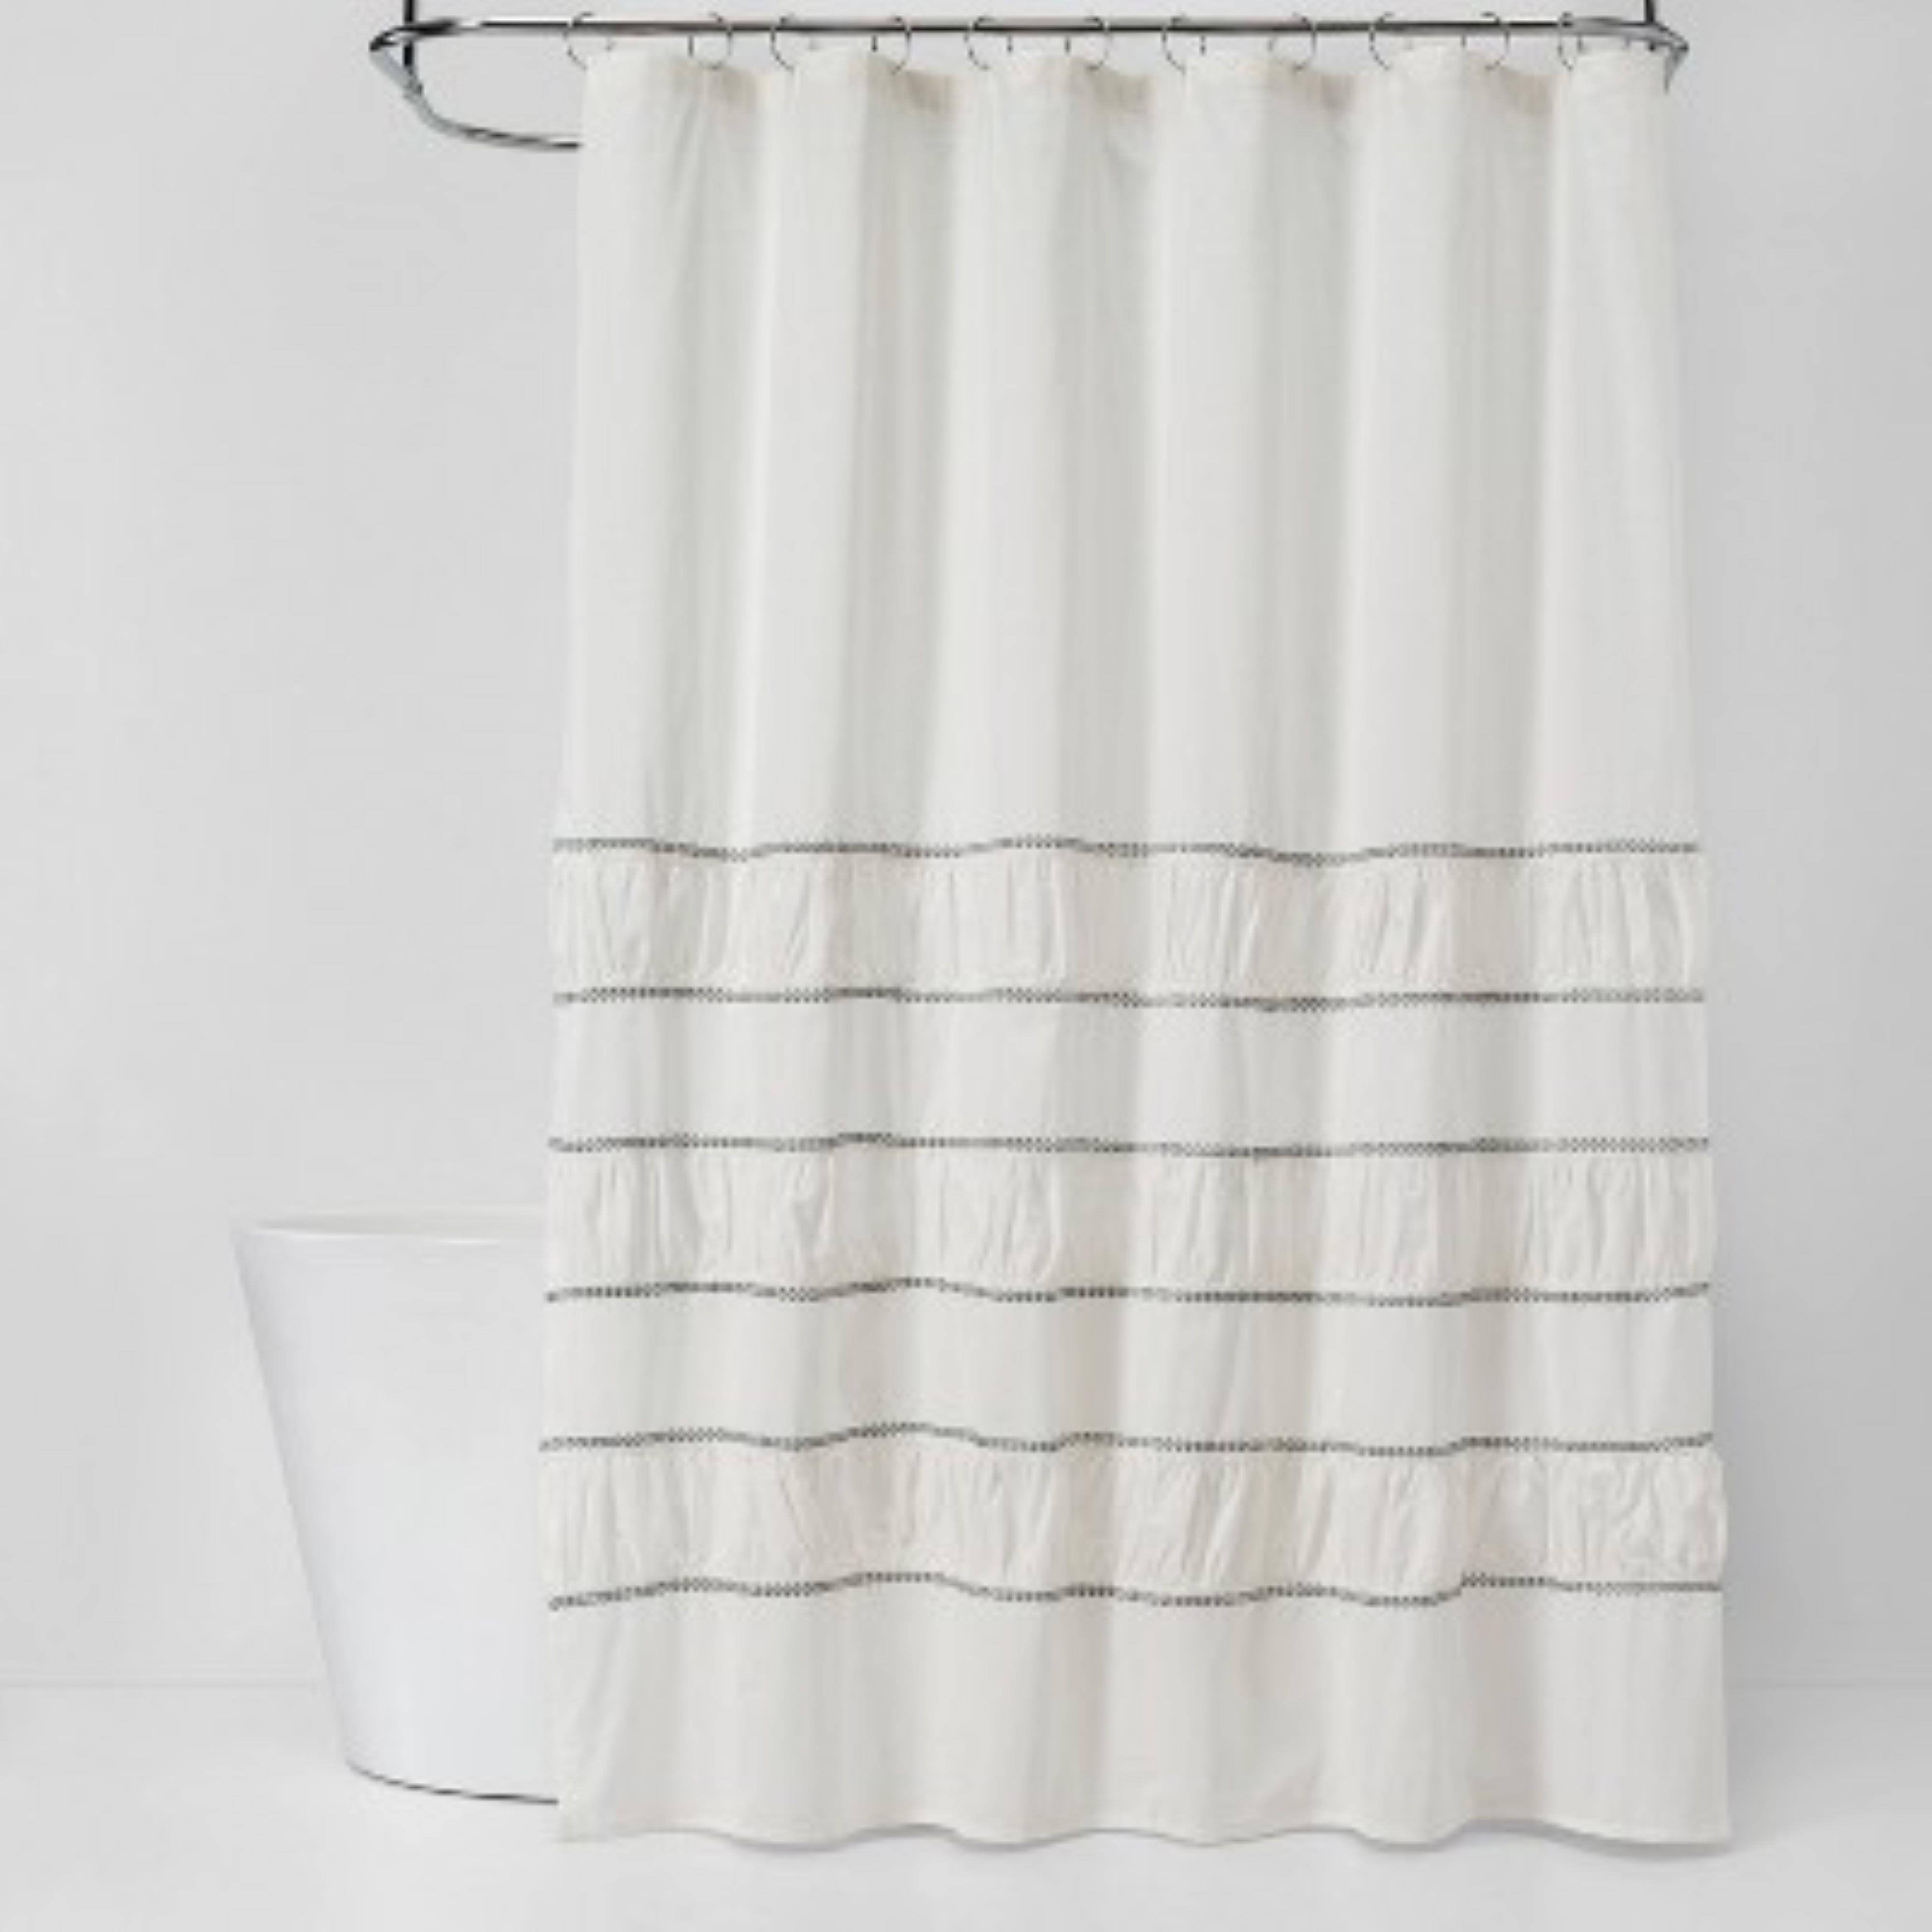 35 pcs threshold pieced pleated embroidered shower curtain off white new retail ready